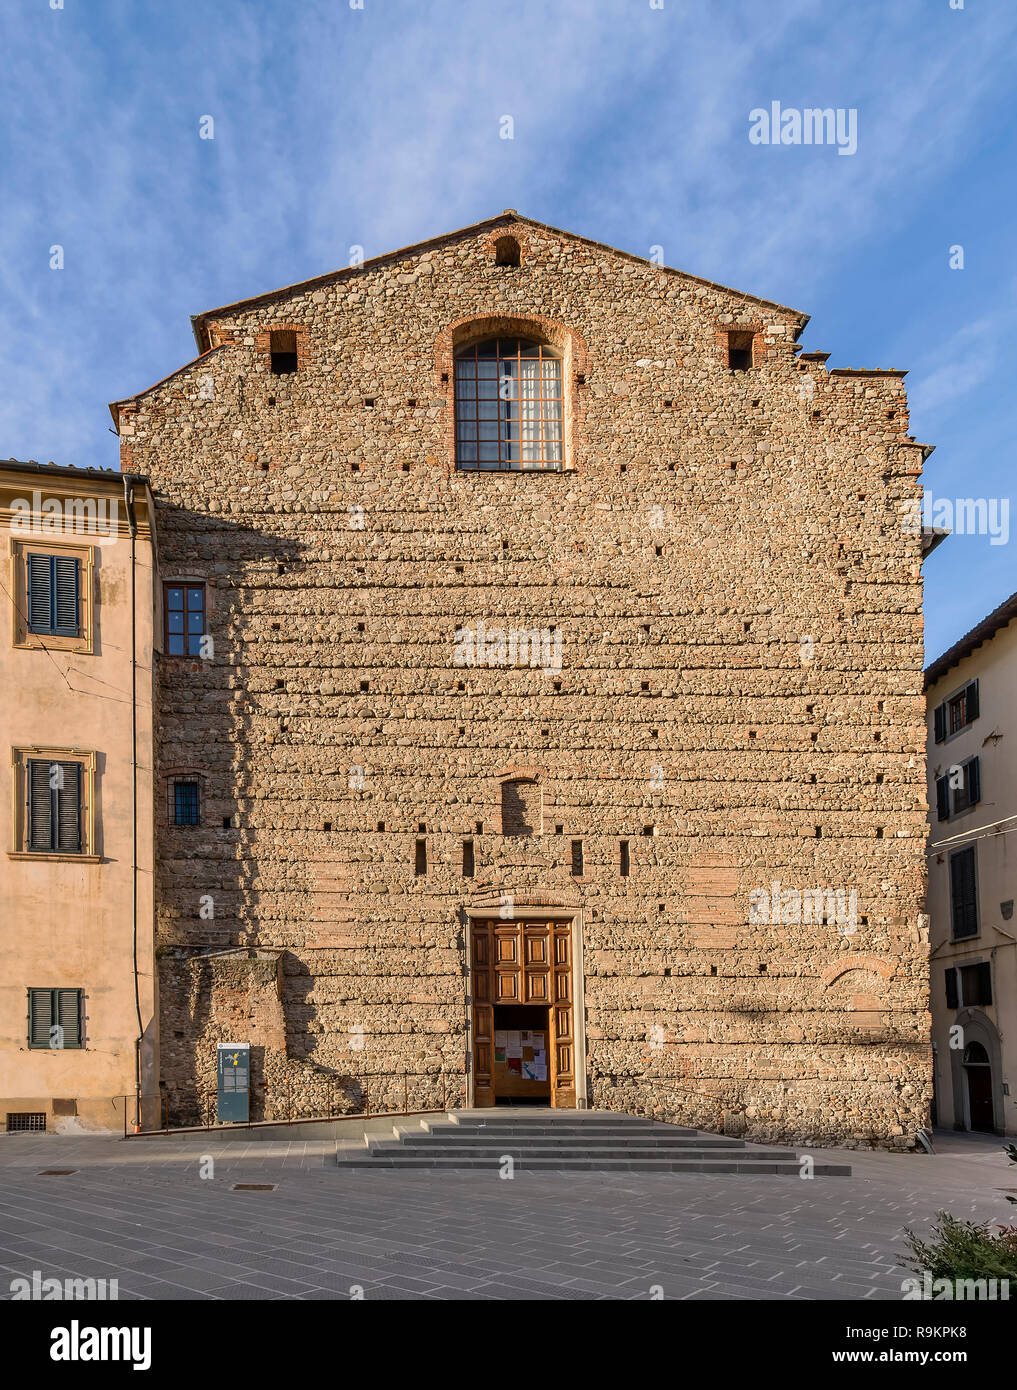 The facade of the Church of the Spirito Santo, or of Sant'Ignazio in the historic center of Pistoia, Tuscany, Italy - Stock Image